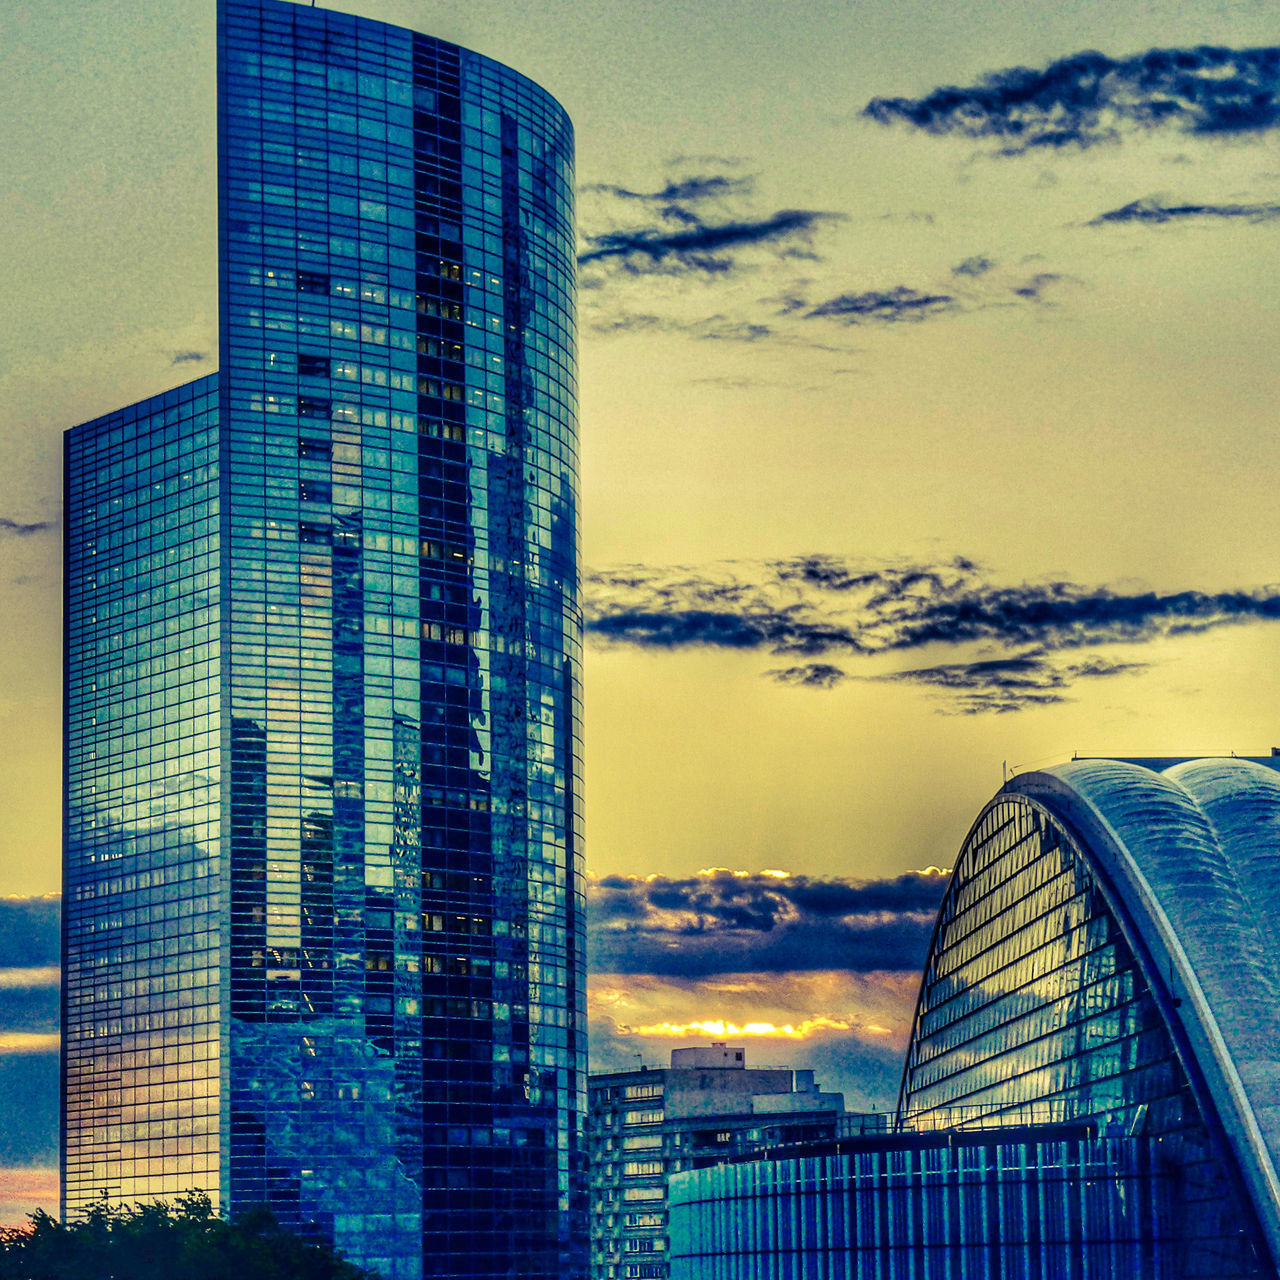 architecture, built structure, building exterior, skyscraper, modern, sky, city, tower, no people, sunset, outdoors, low angle view, day, cloud - sky, travel destinations, tall, cityscape